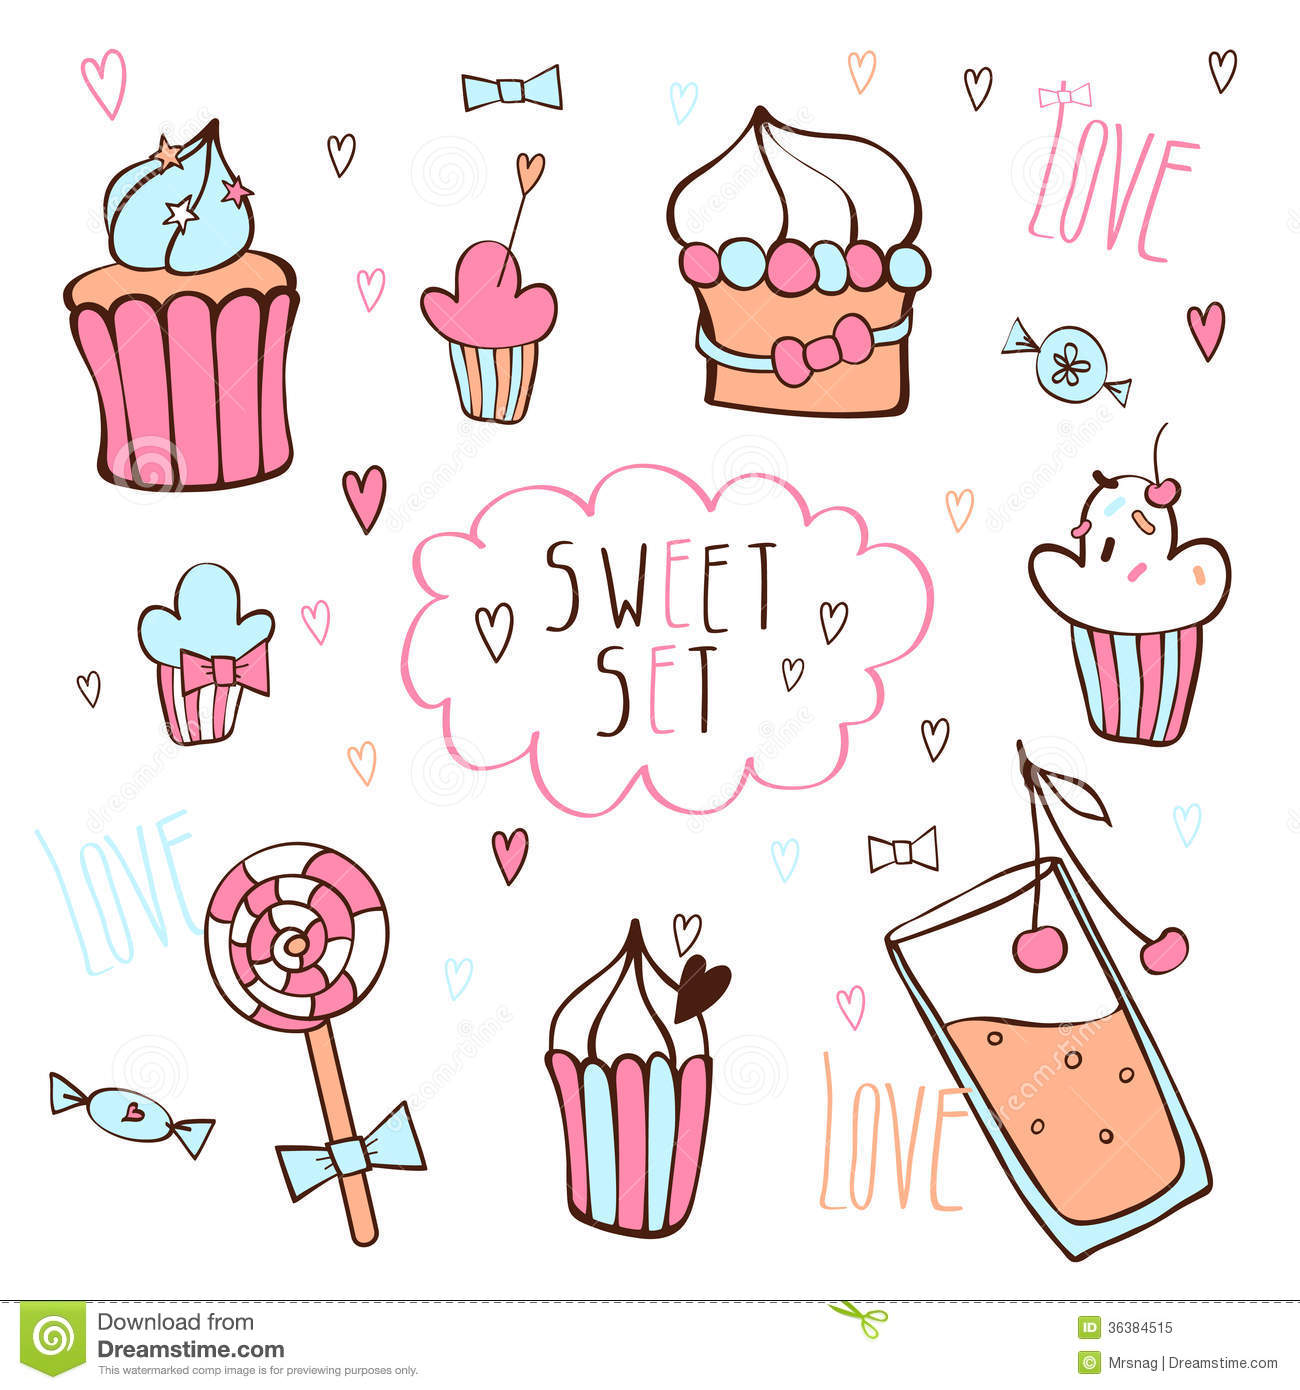 Sweet Vector Set Royalty Free Stock Photo Image 36384515